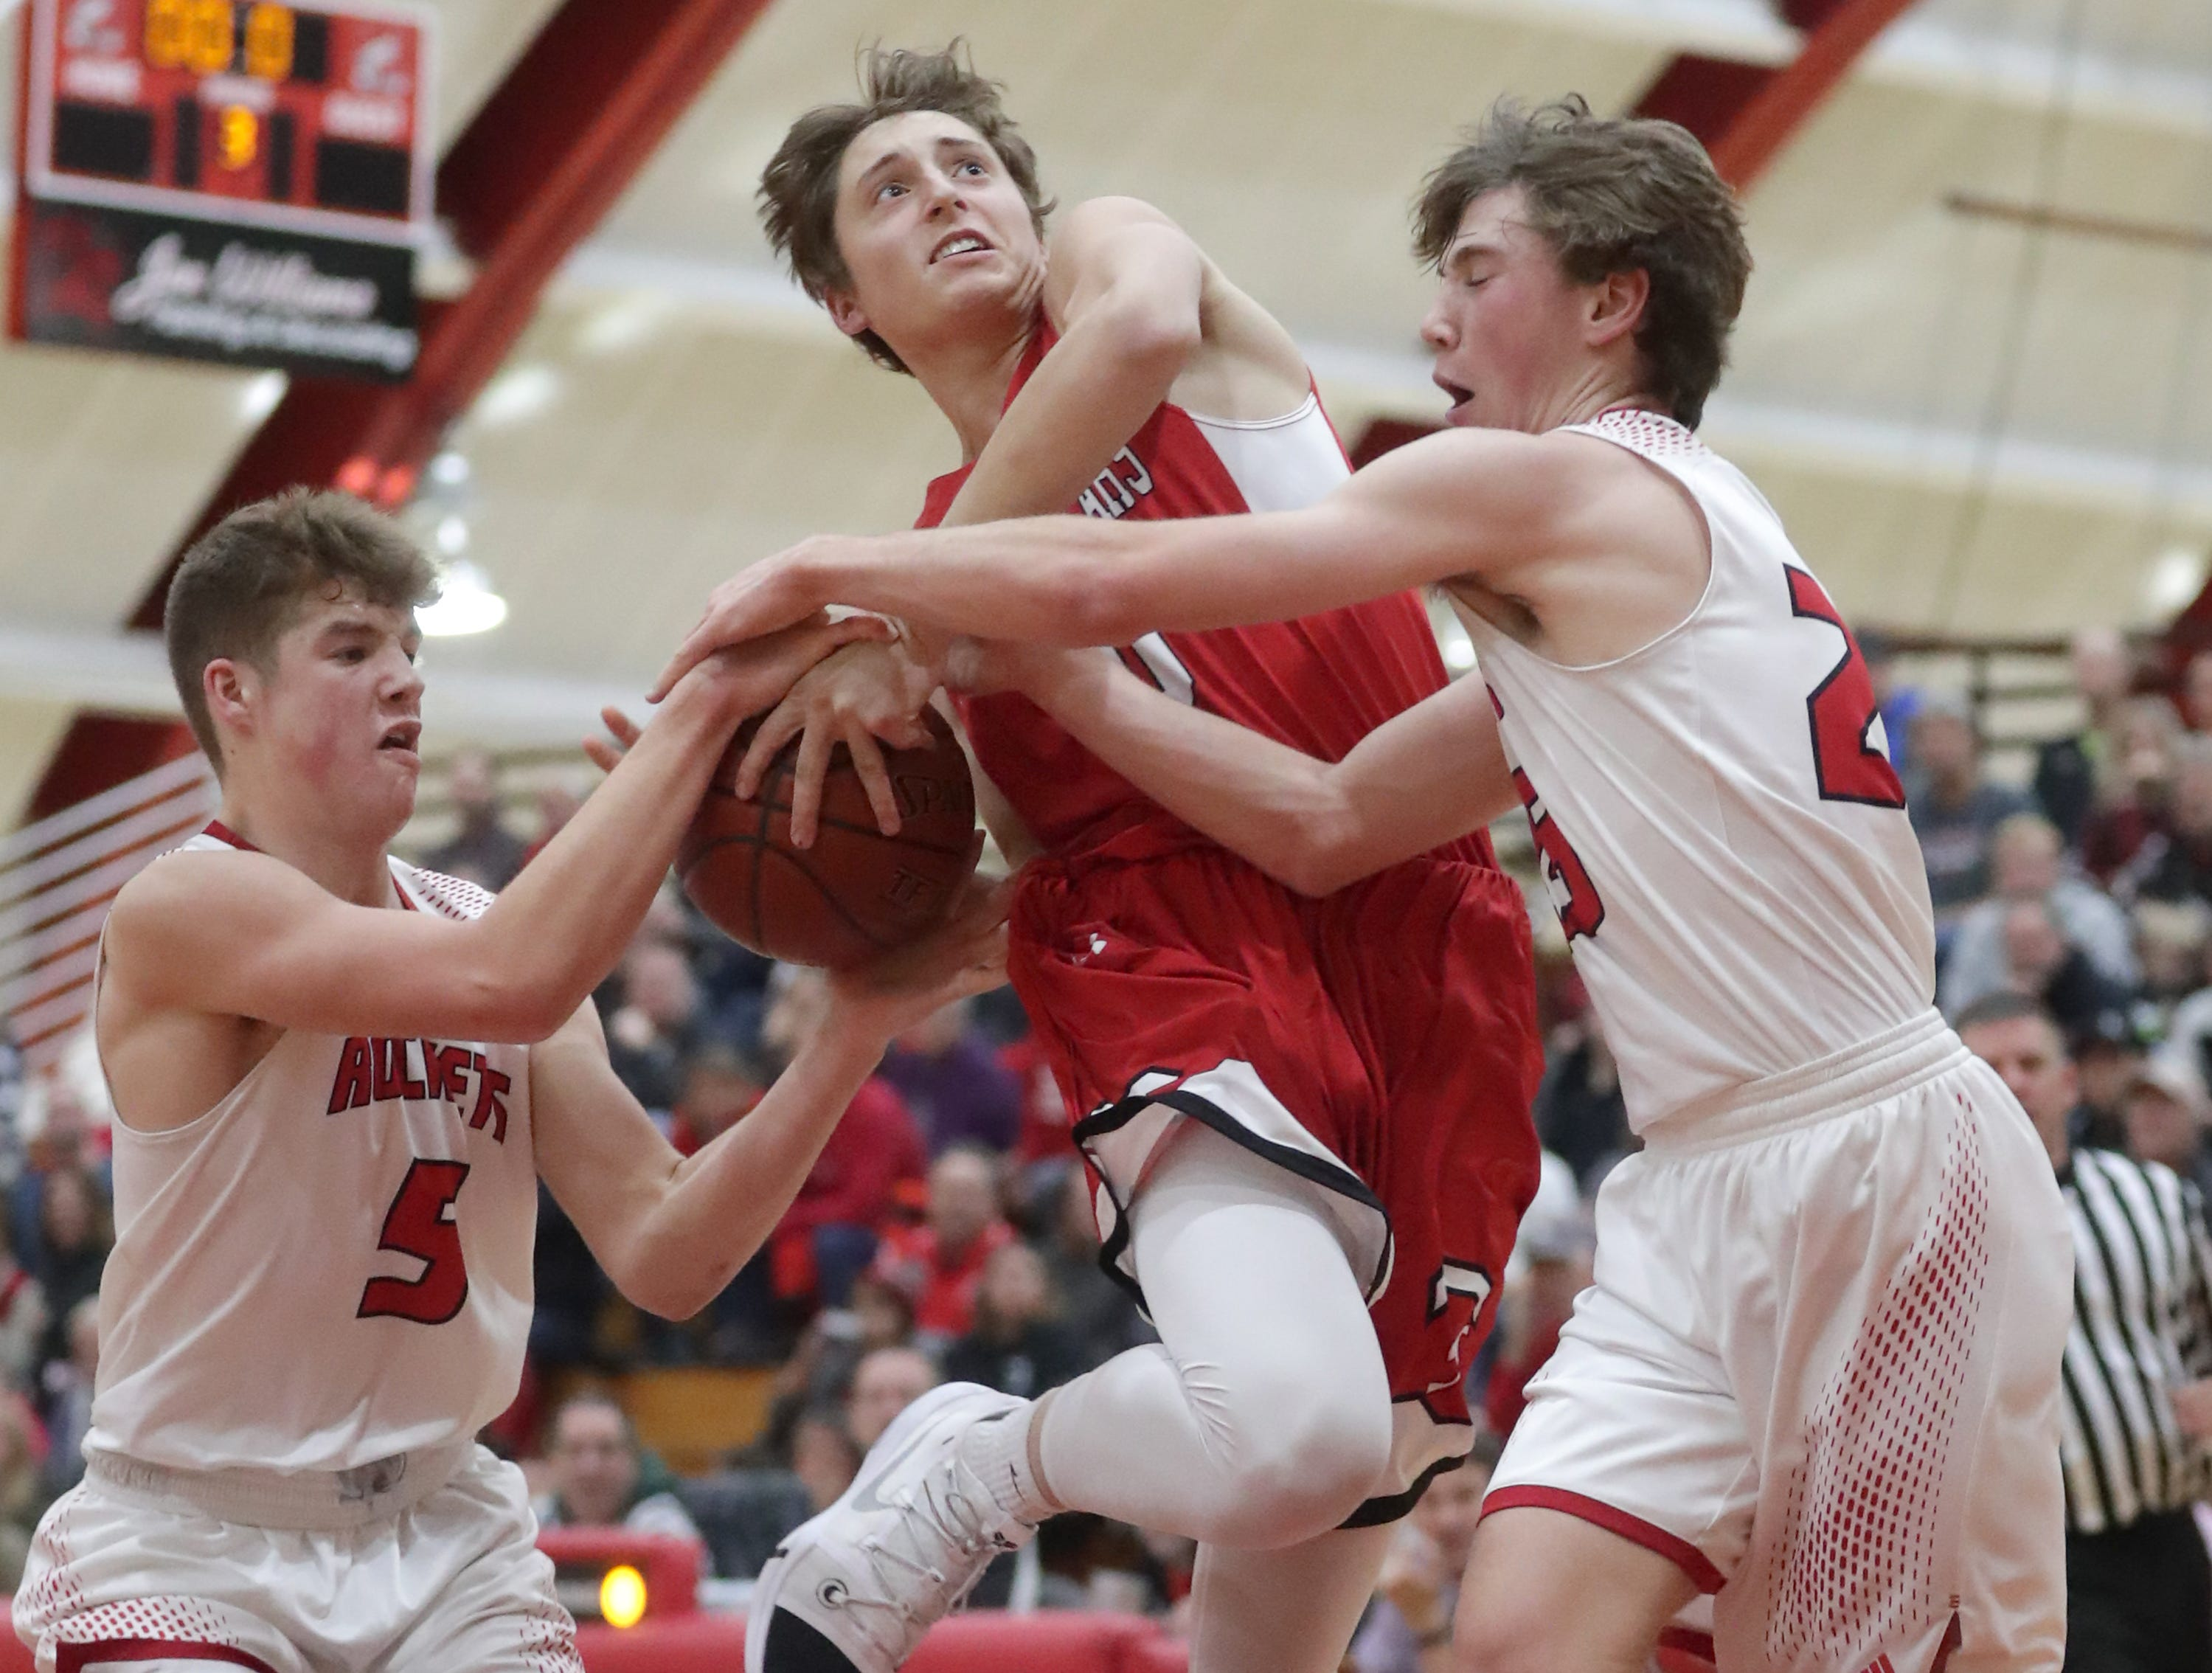 Hortonville High School's #10 Mason Thiel against Neenah High School's #5 Max Klesmit and #25 Bryce Henderson during their Fox Valley Association boys basketball game on Friday, November 30, 2018, in Neenah, Wis. Neenah defeated Hortonville 71 to 67 in overtime.Wm. Glasheen/USA TODAY NETWORK-Wisconsin.